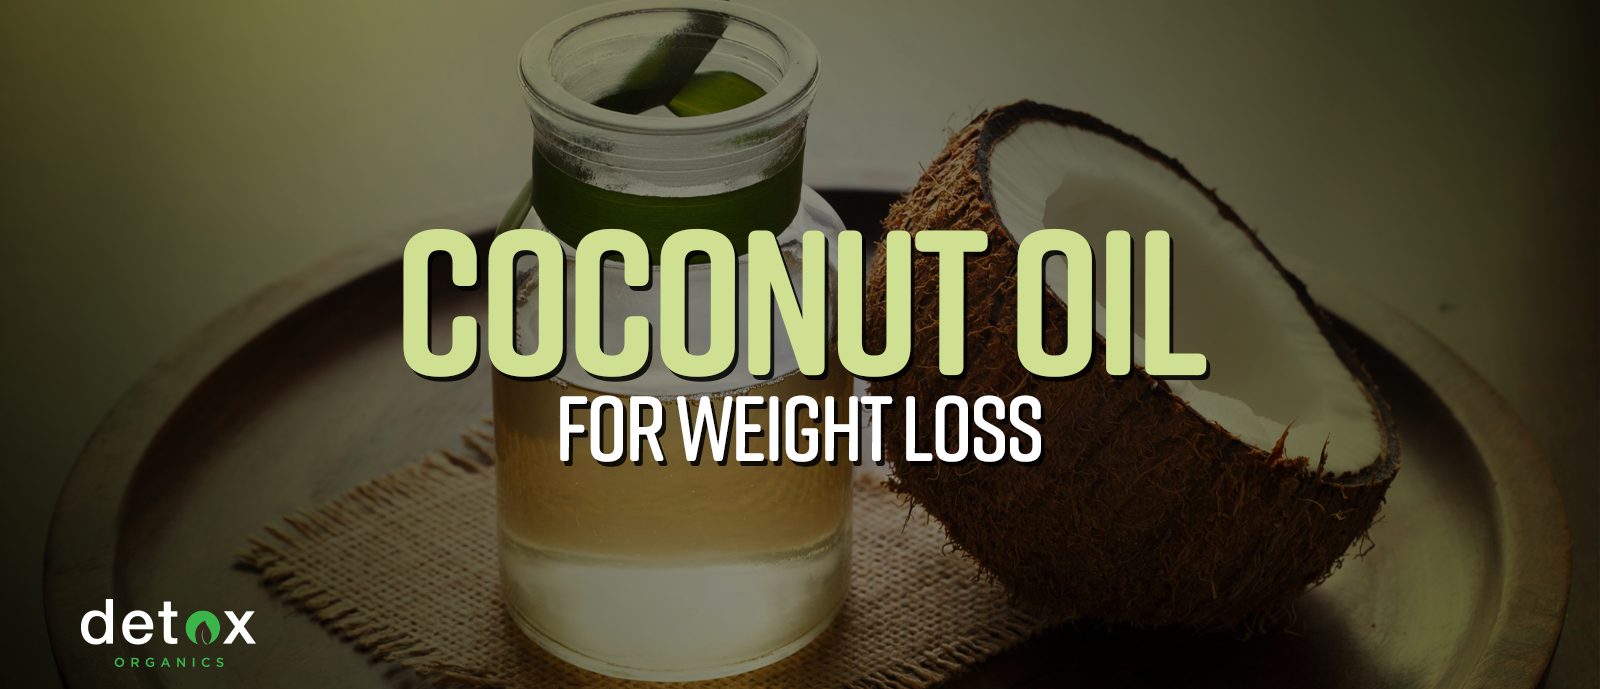 Coconut Oil for Weight Loss: Other Health Benefits